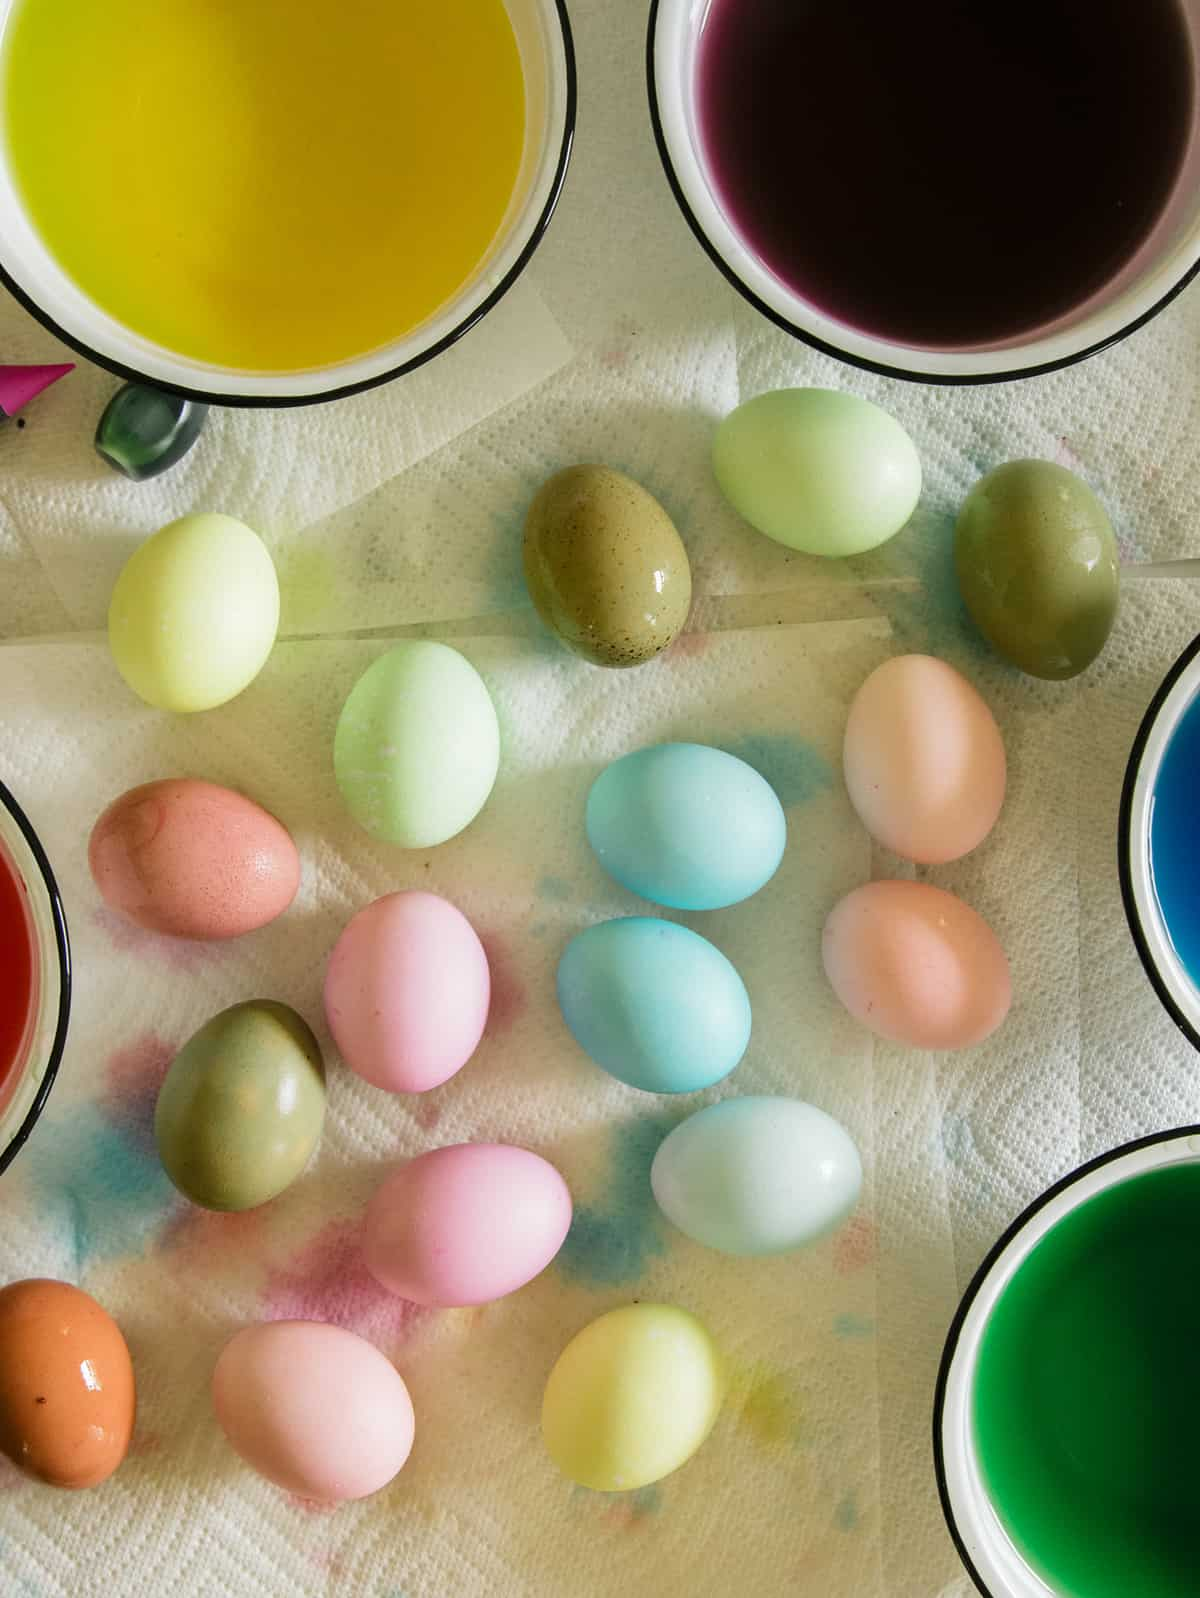 Dyed Easter eggs in a variety of colors on paper towels next to bowls of dye.